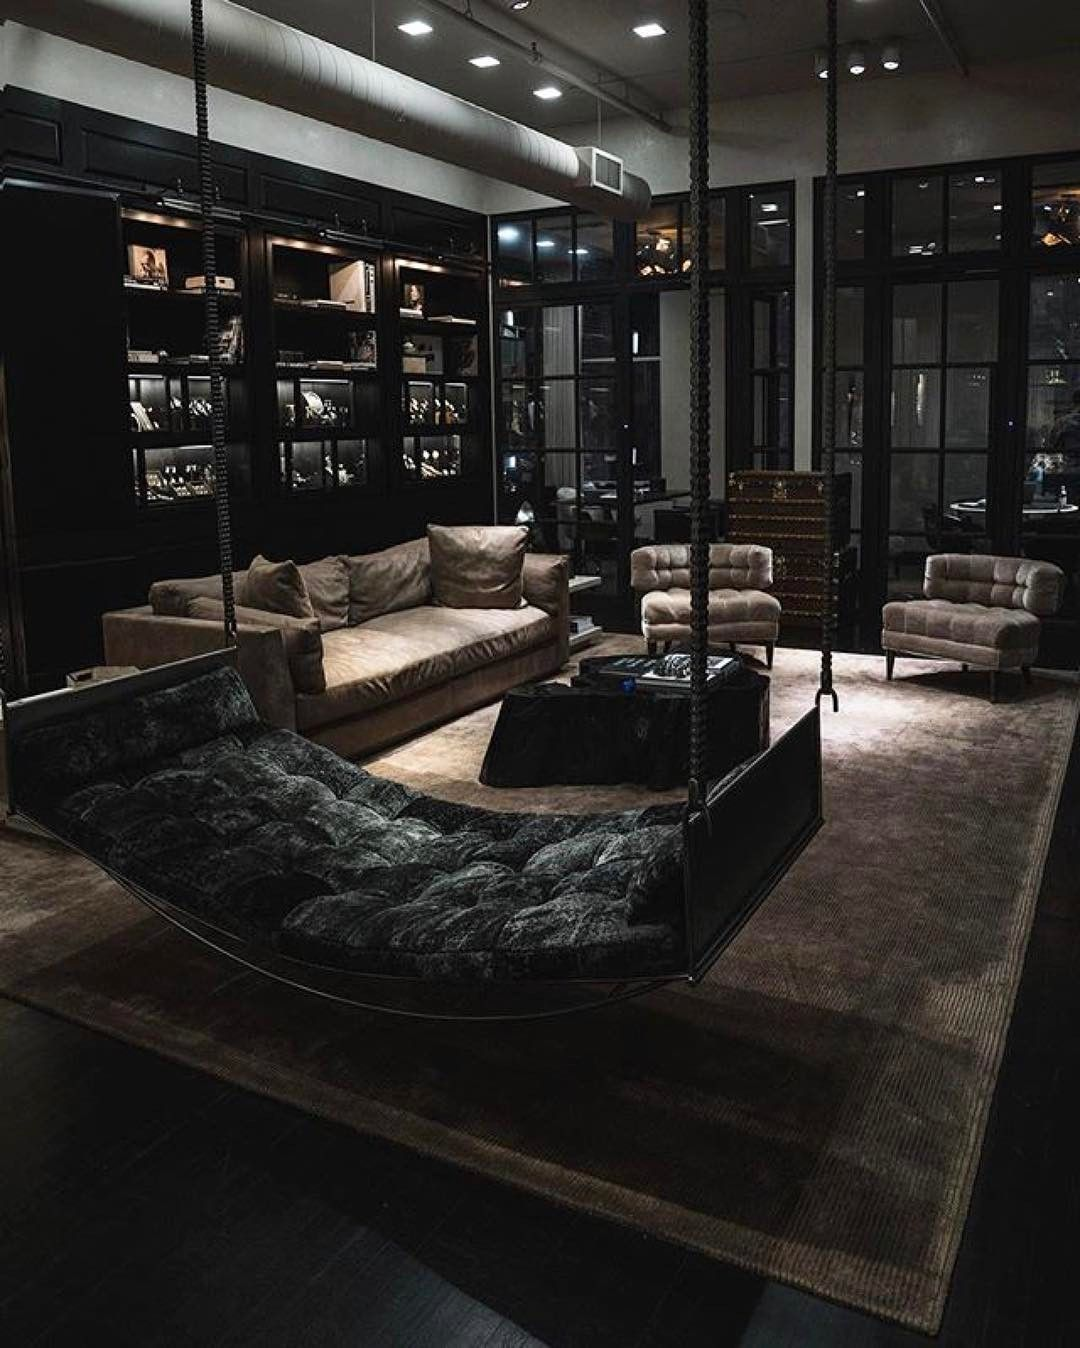 Comment and tag someone who needs to see this incredible for Interior design for dark rooms